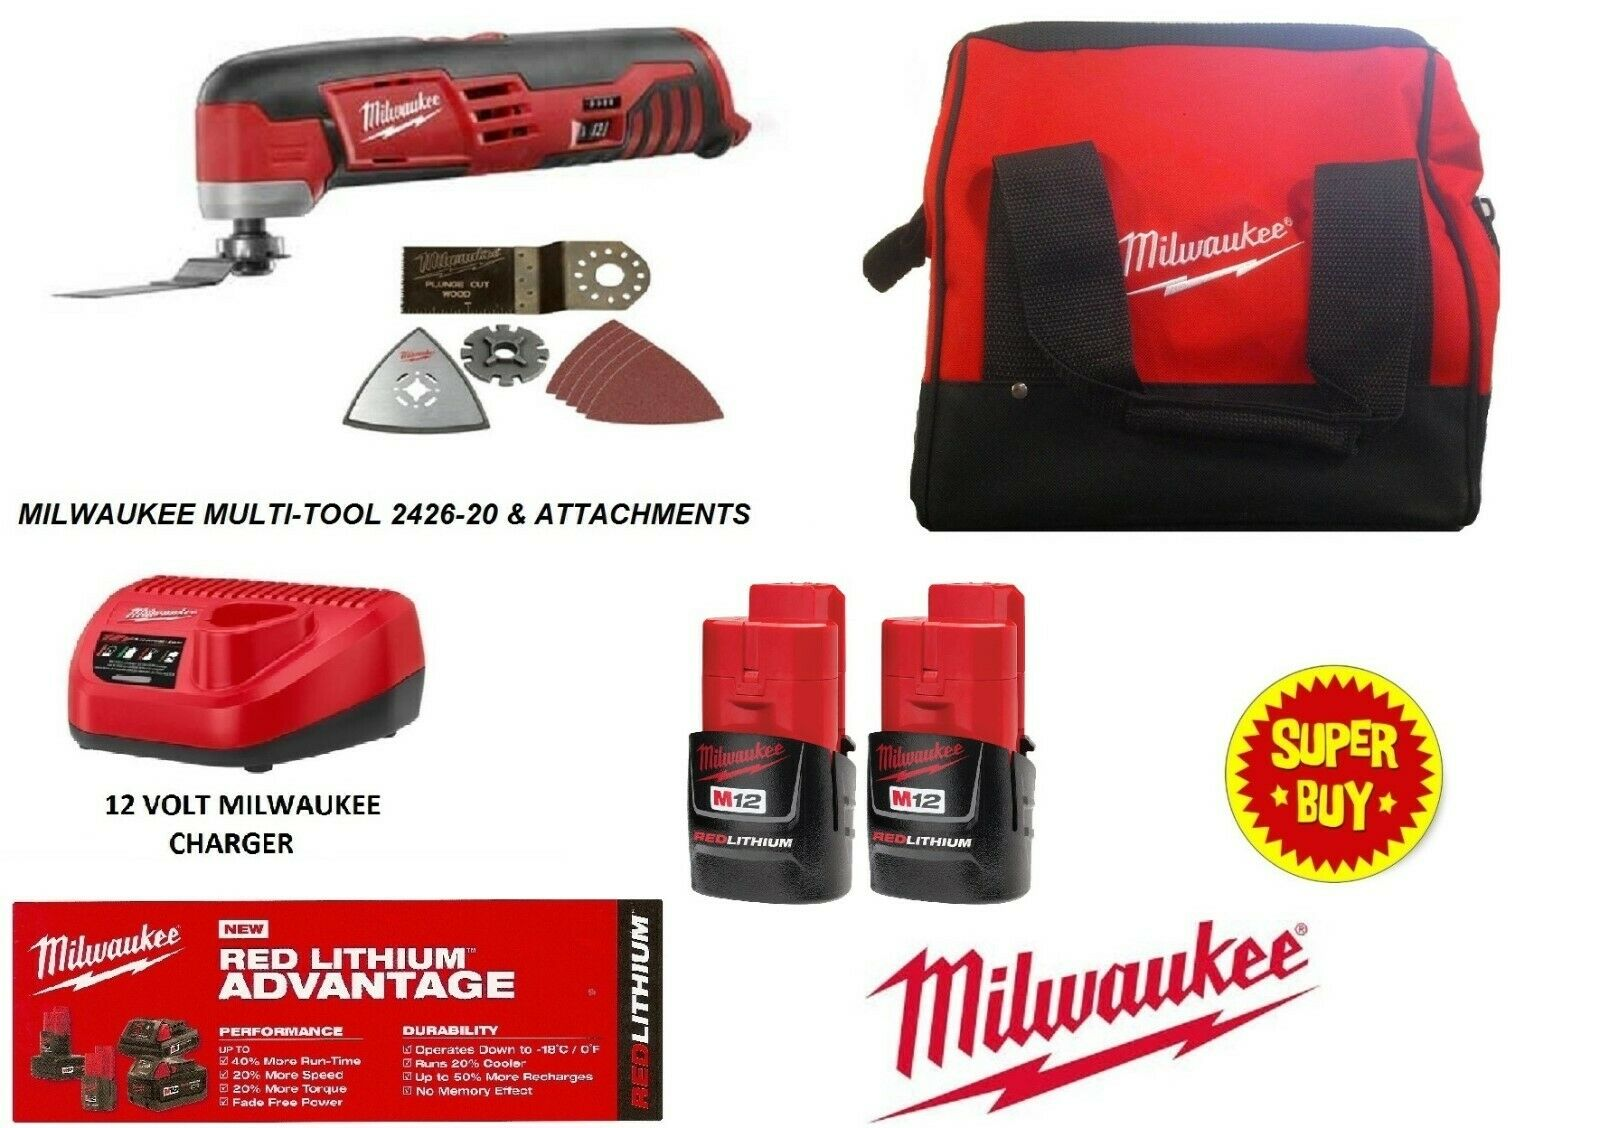 New M12 12 Volt Lithium-Ion Oscillating Cutting Multi Tool 2-Battery Kit 2426-22